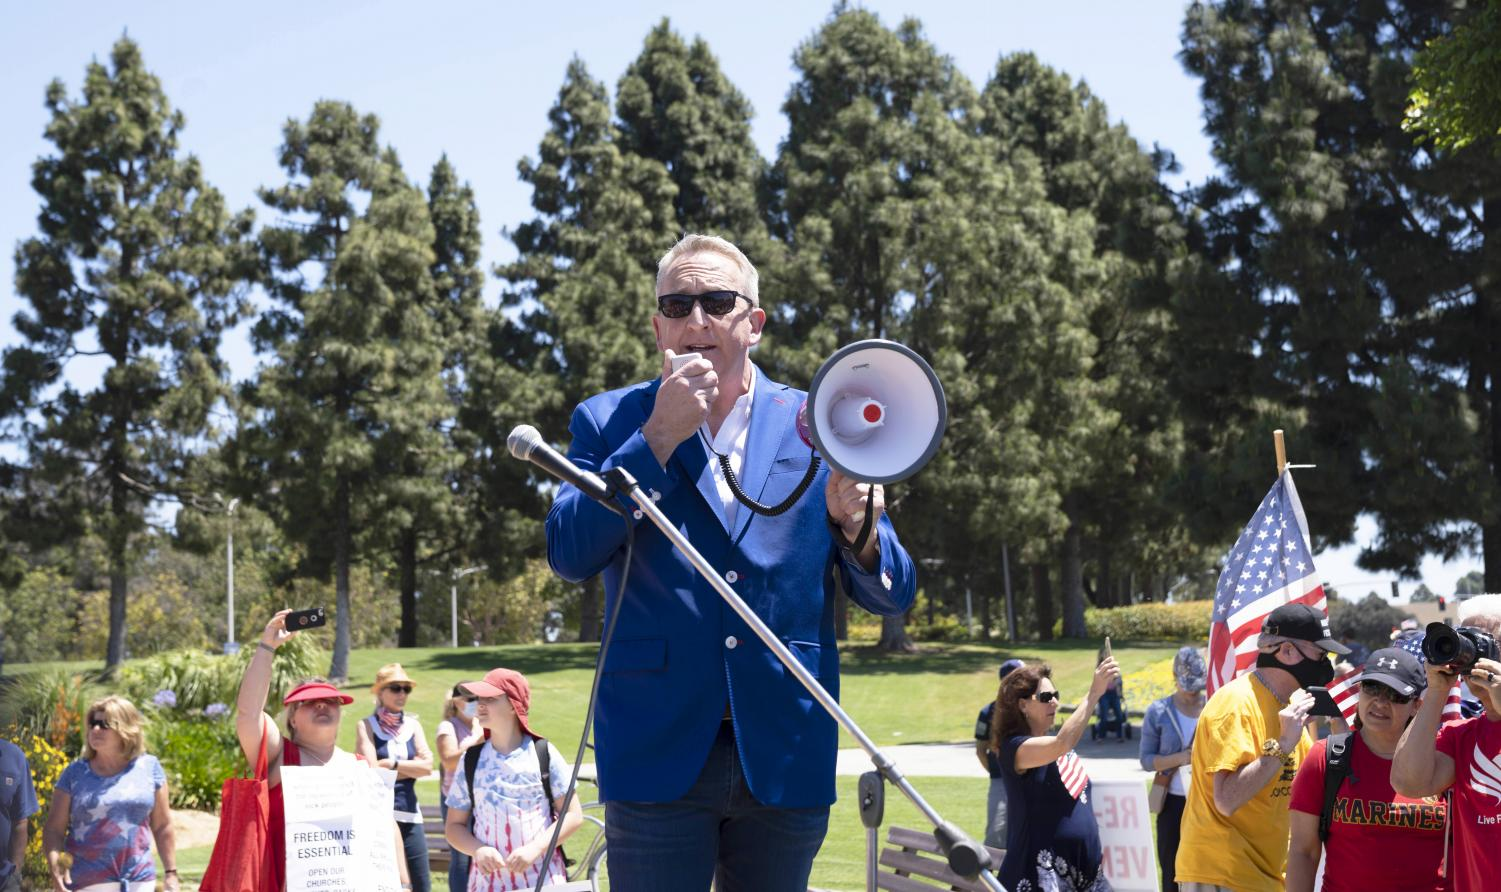 Pastor Rob McCoy addresses the protestors gathered at the Ventura County Government Center on May 1, 2020 in opposition to the current Covid-19 shutdown restrictions.